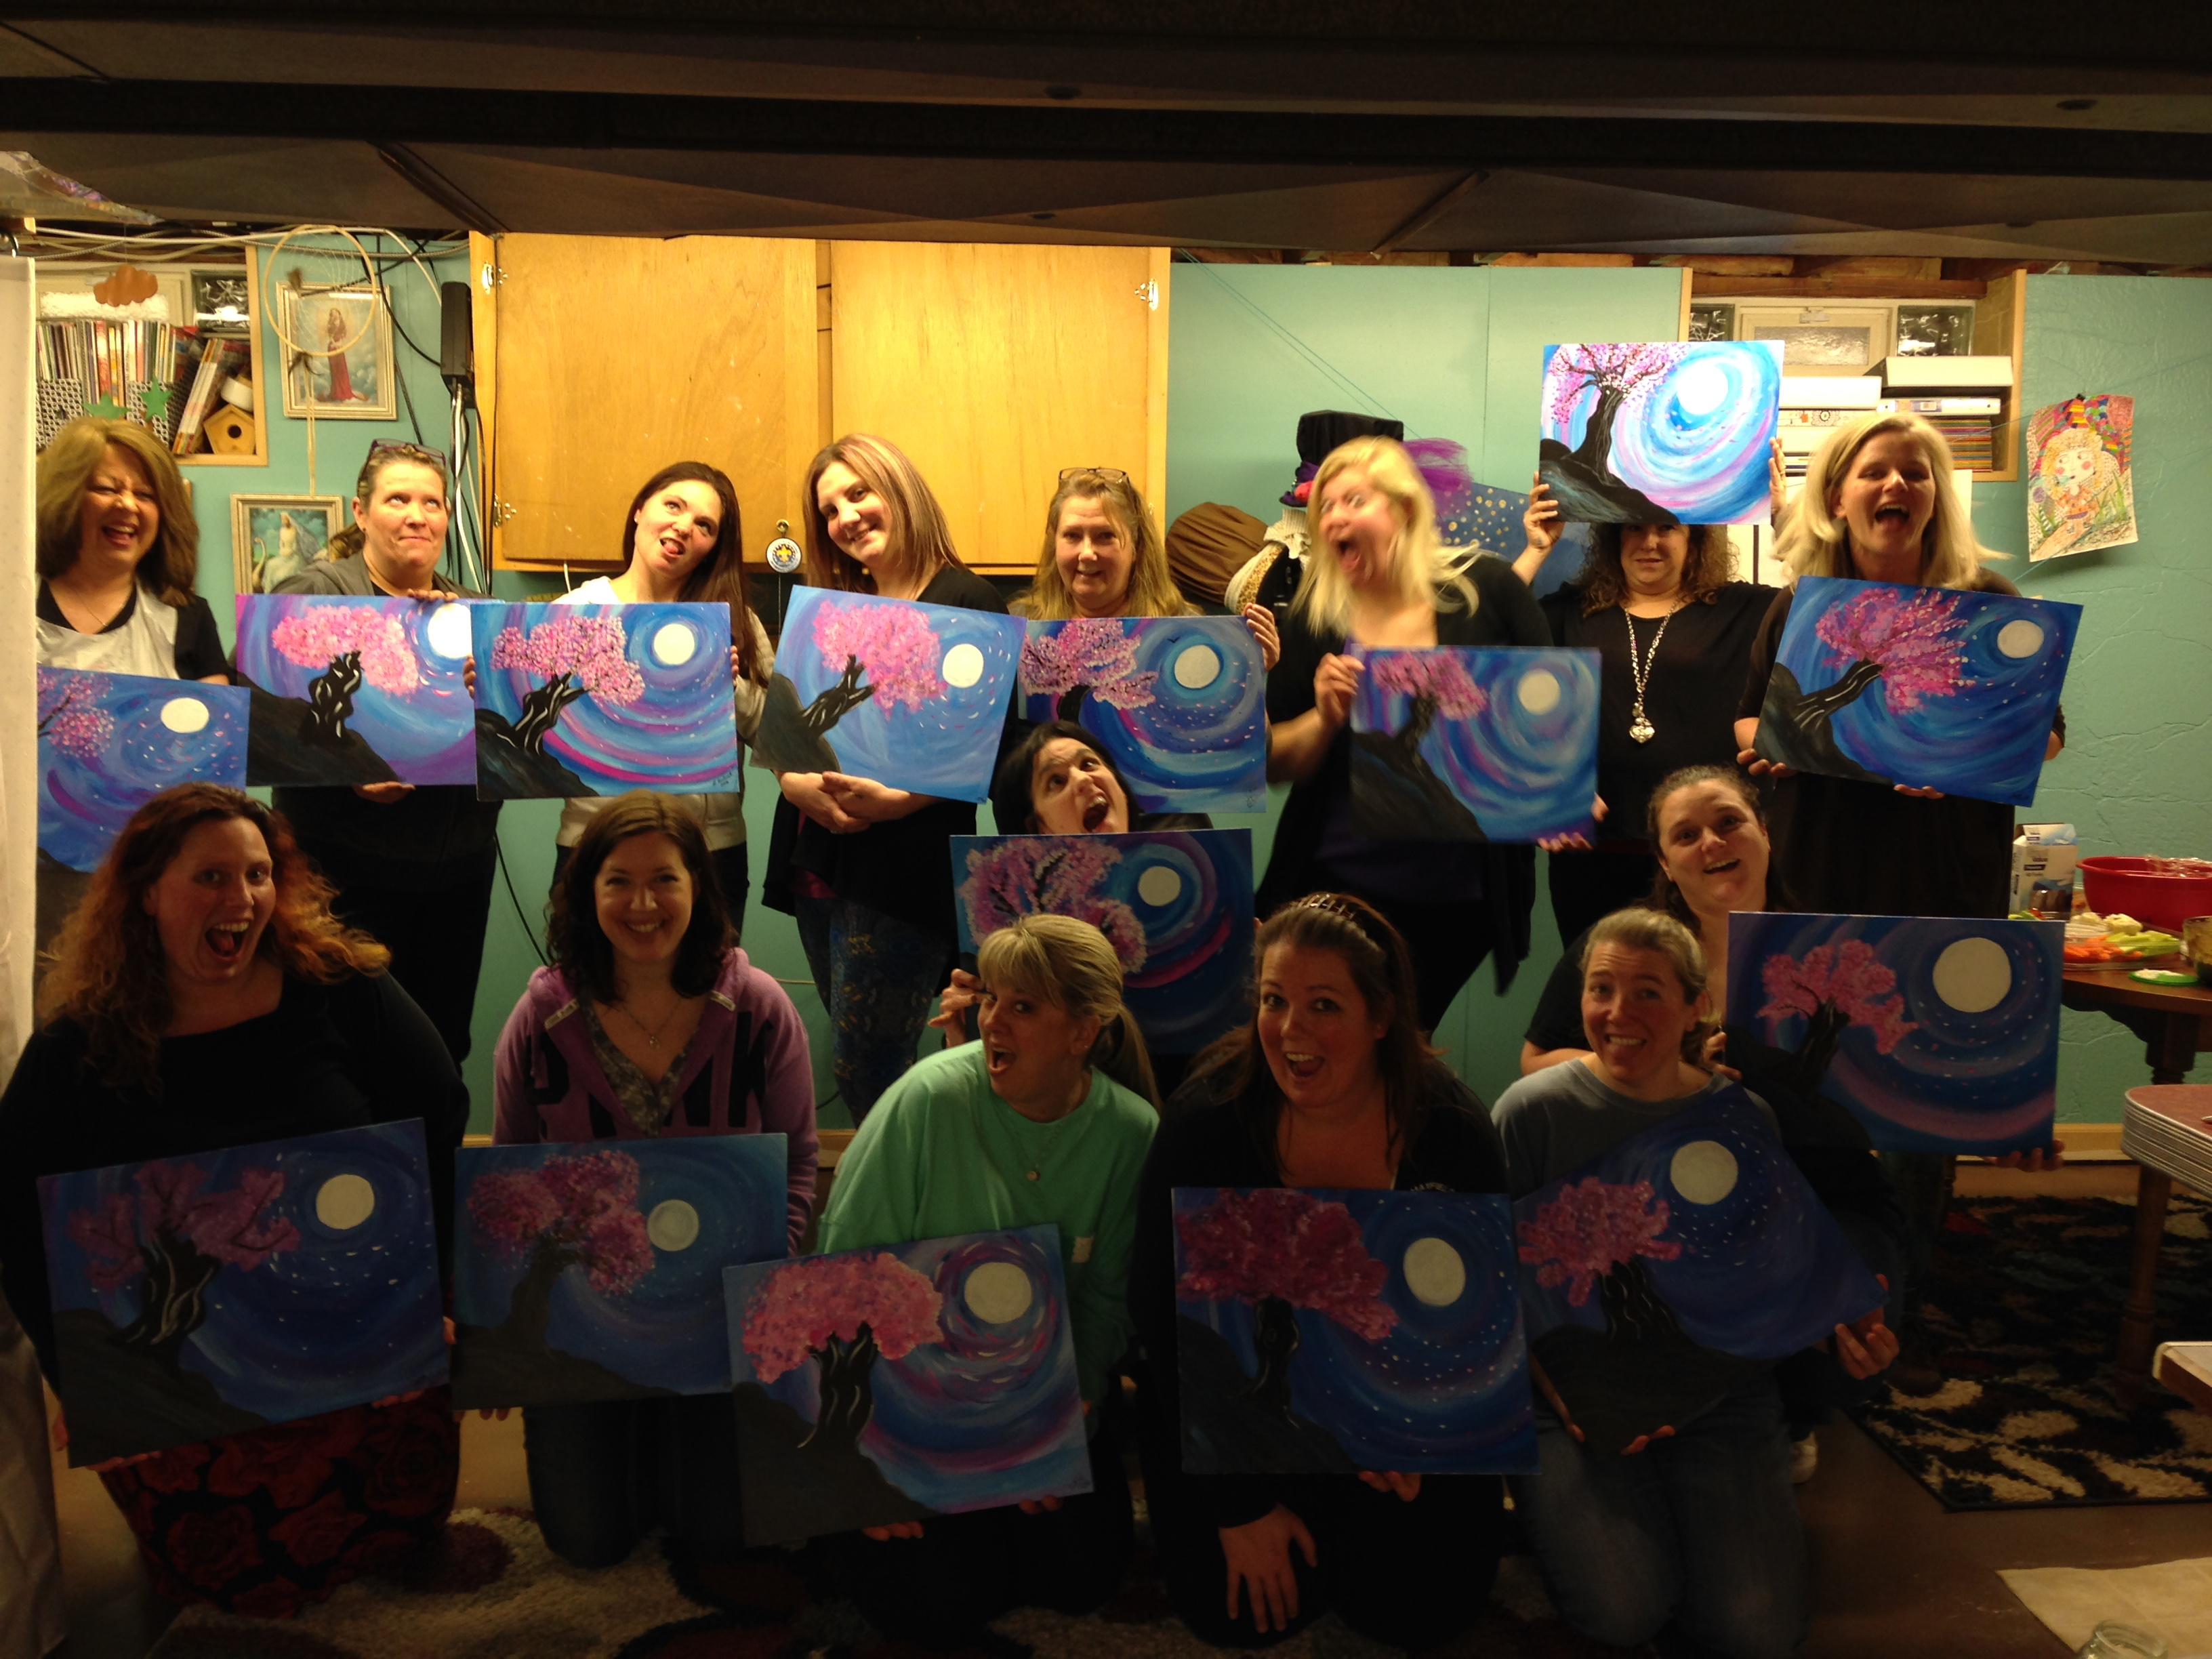 Suzanne Funk painting party 2/20/16